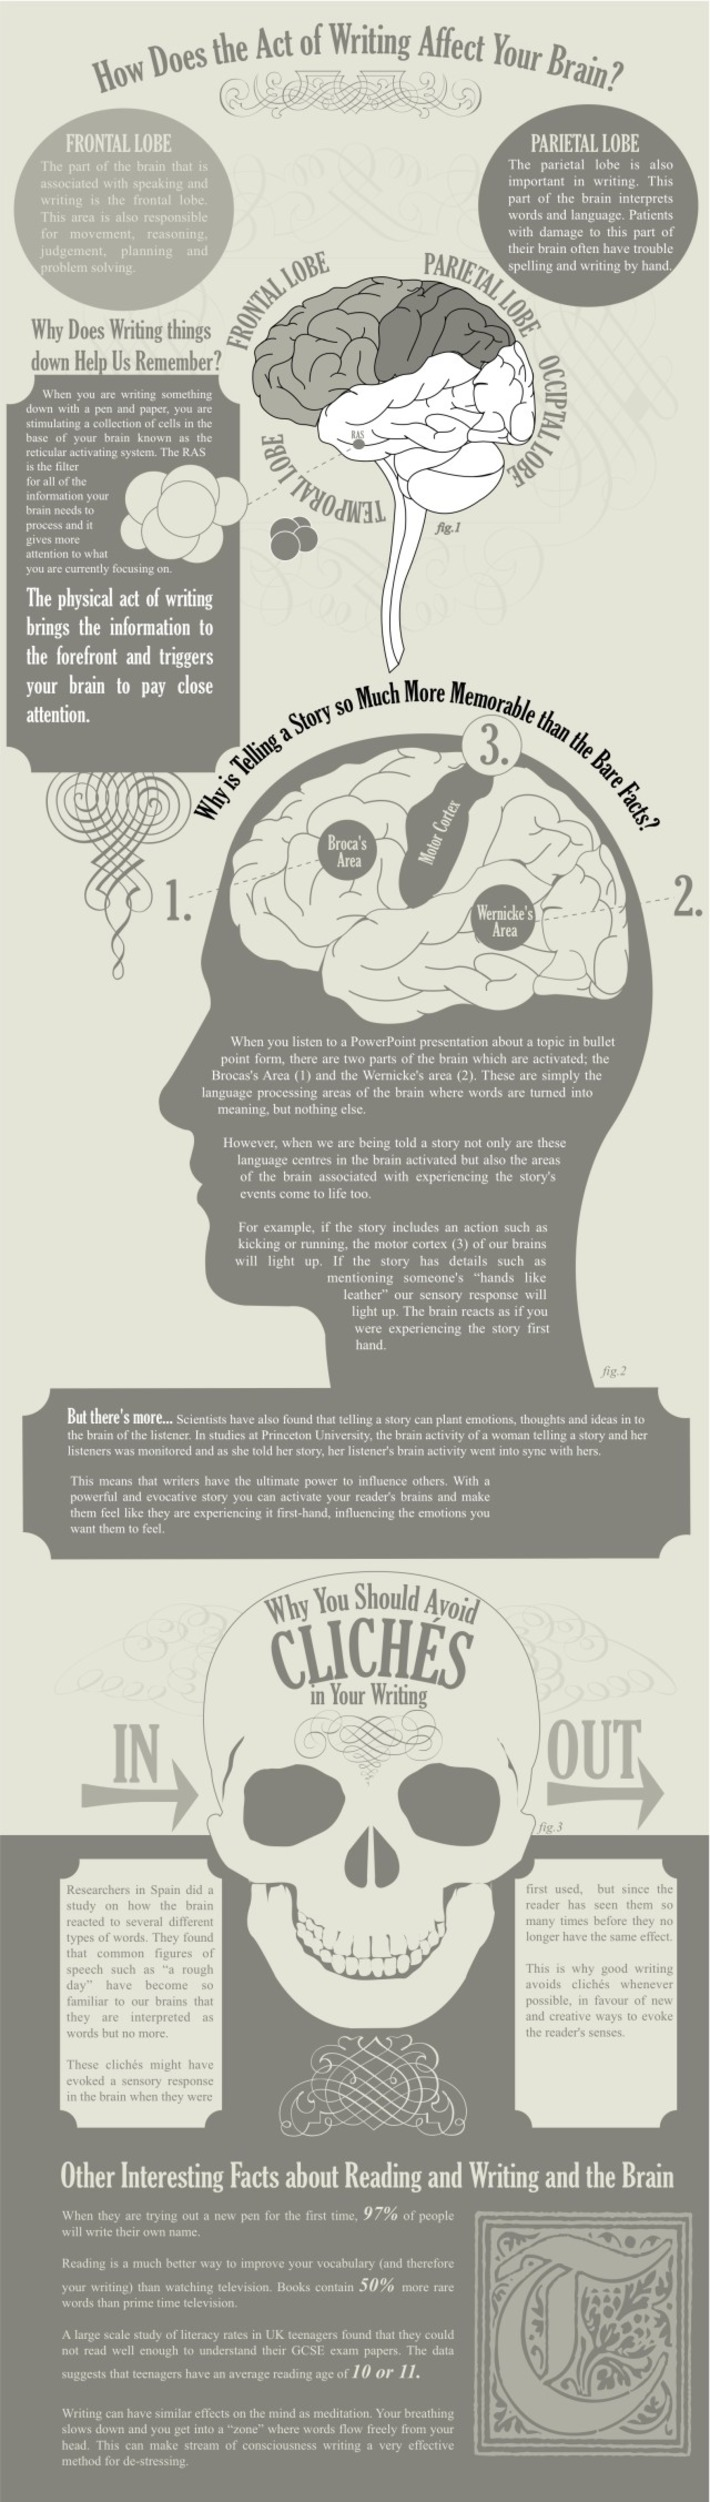 How Does Writing Affect Your Brain? | Kinsanity | Scoop.it